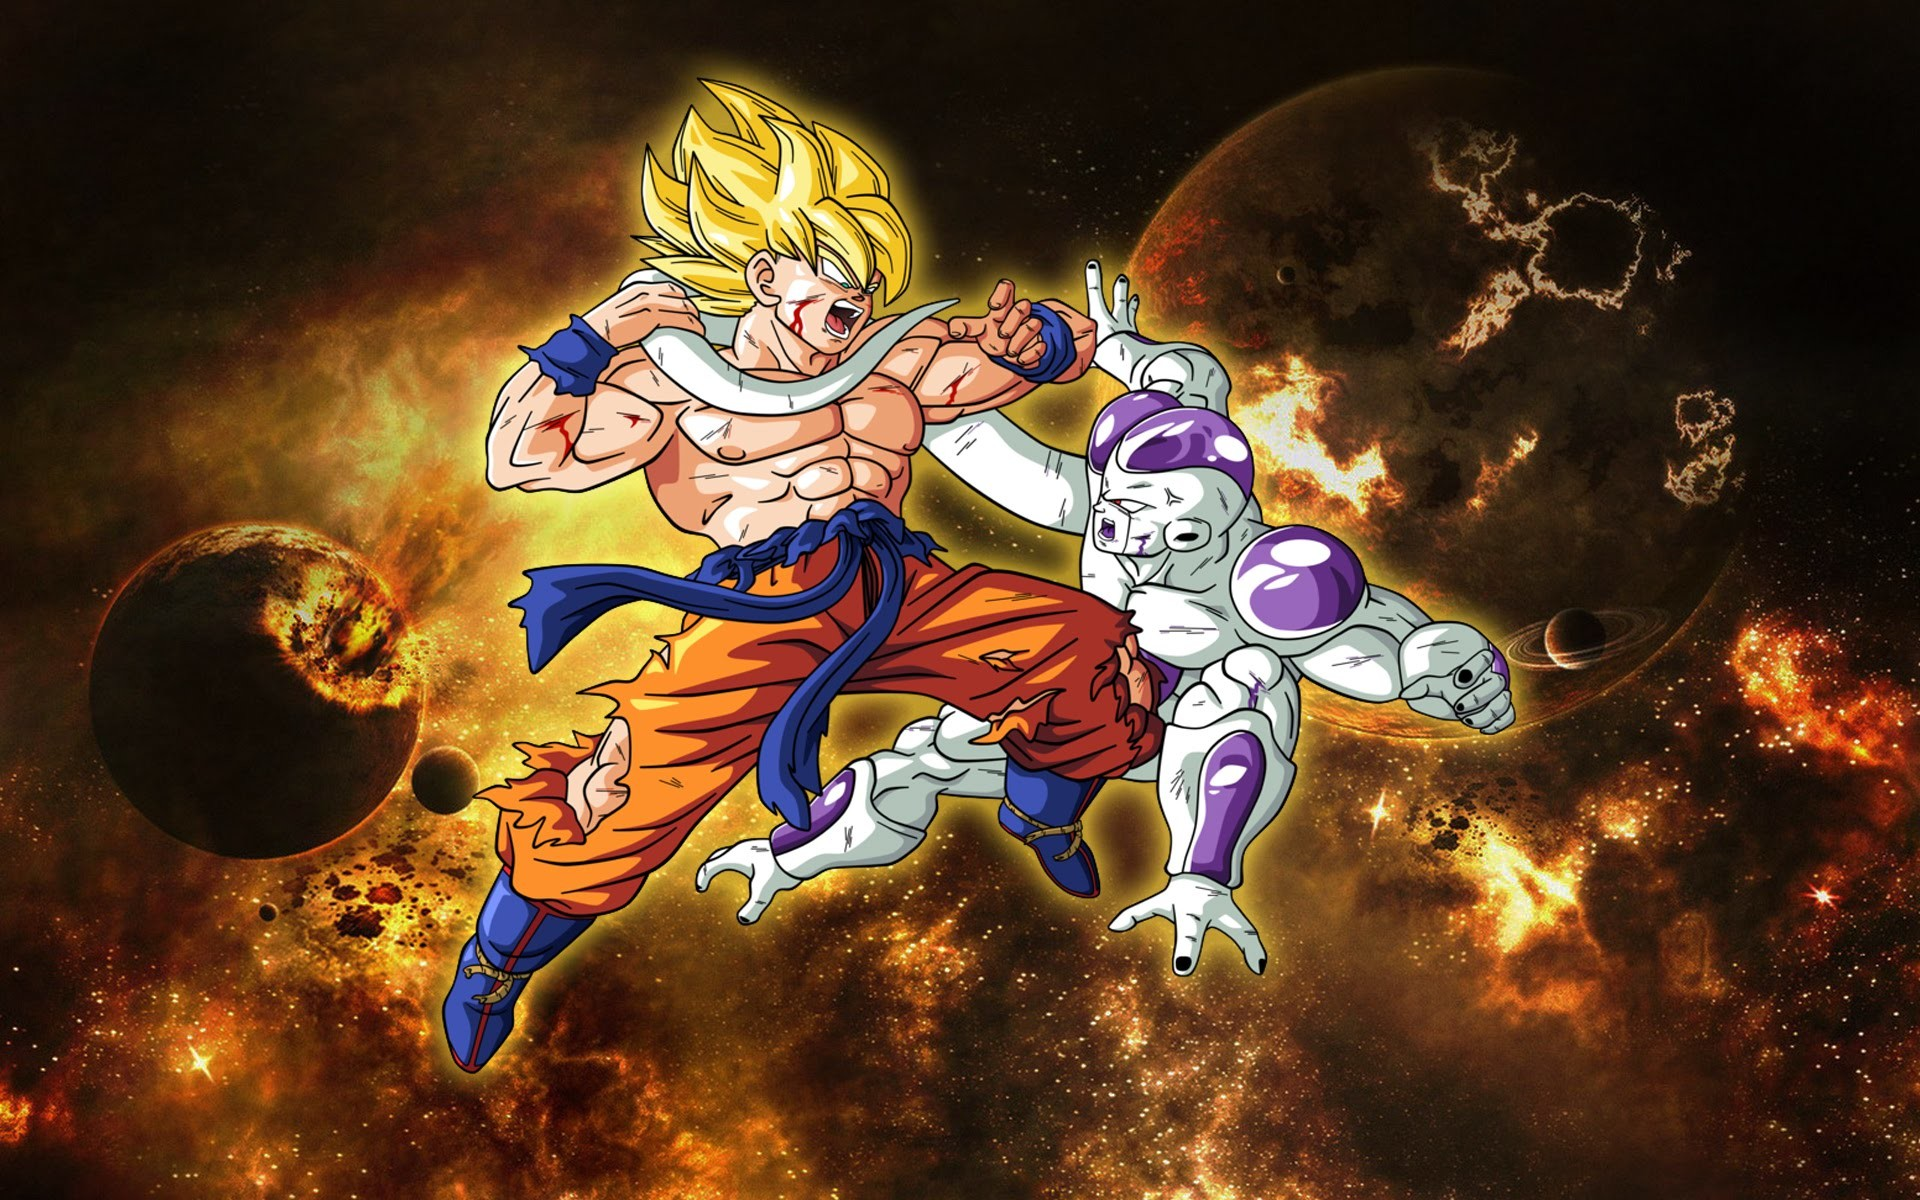 Frieza wallpapers 66 background pictures - Frieza wallpaper ...